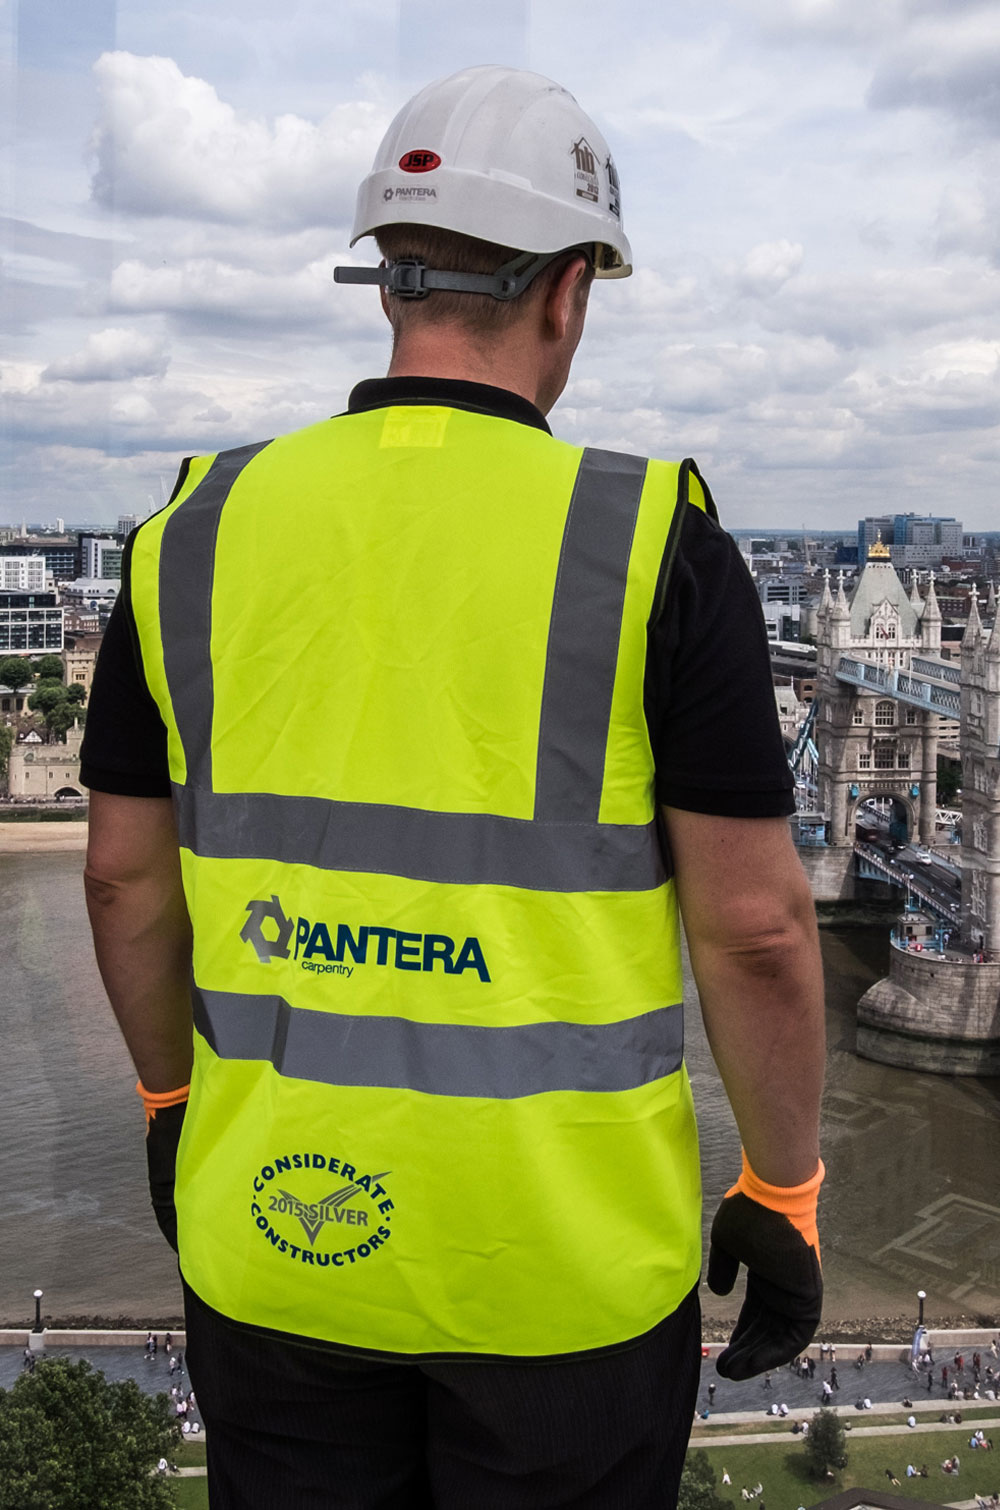 Image of a Pantera Wardrobes health and safety consultant on site